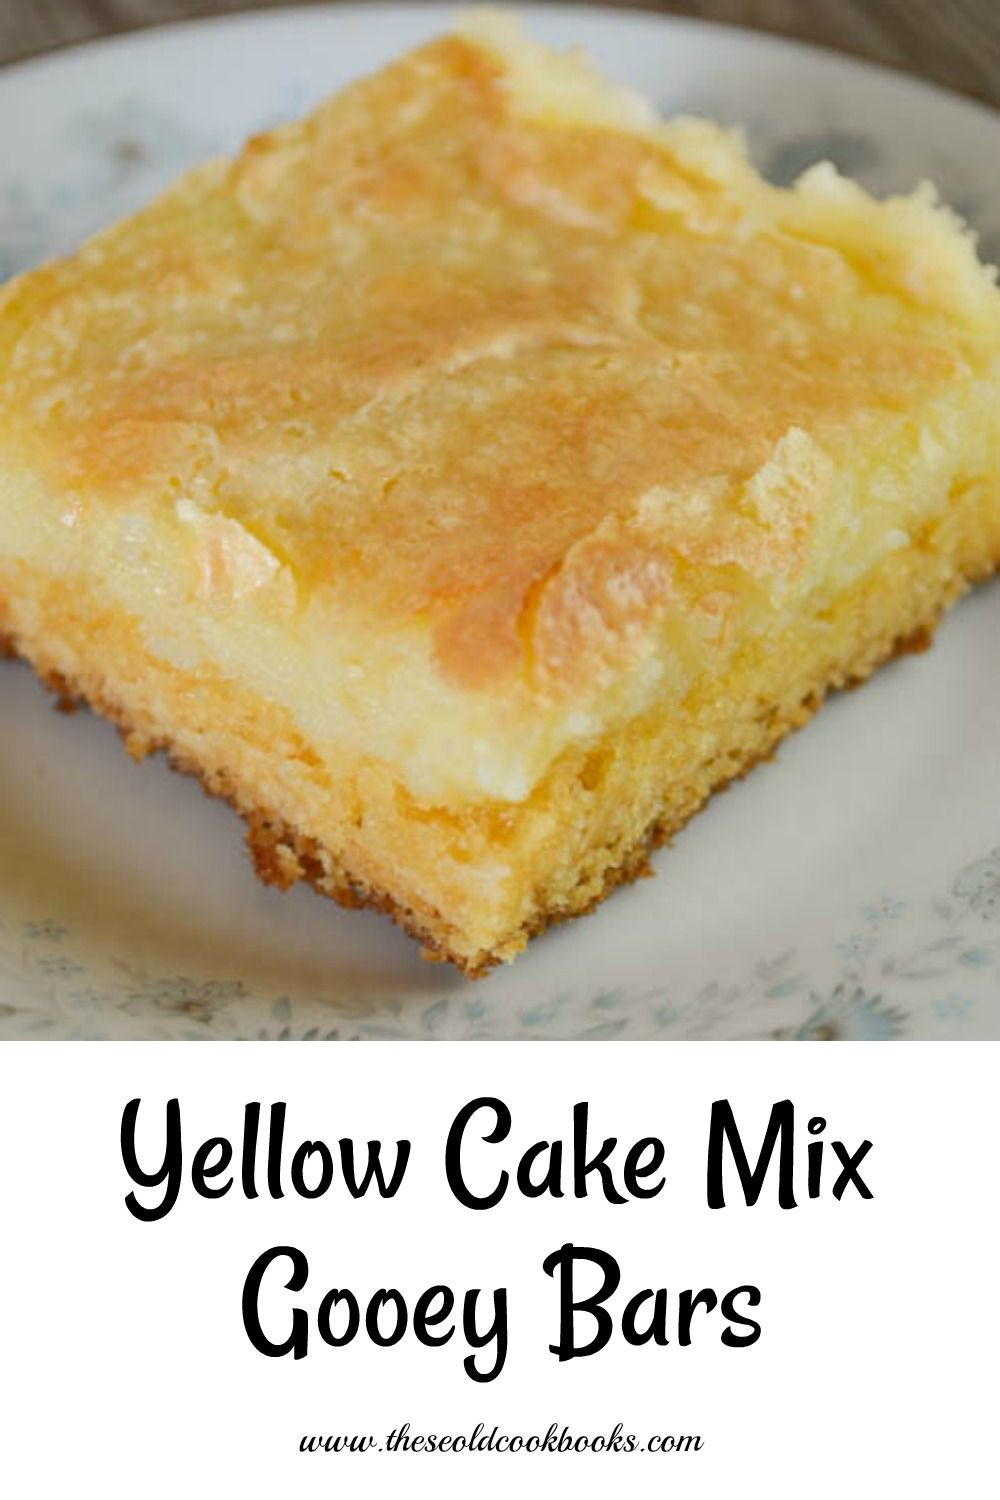 12 cake Mix desserts ideas